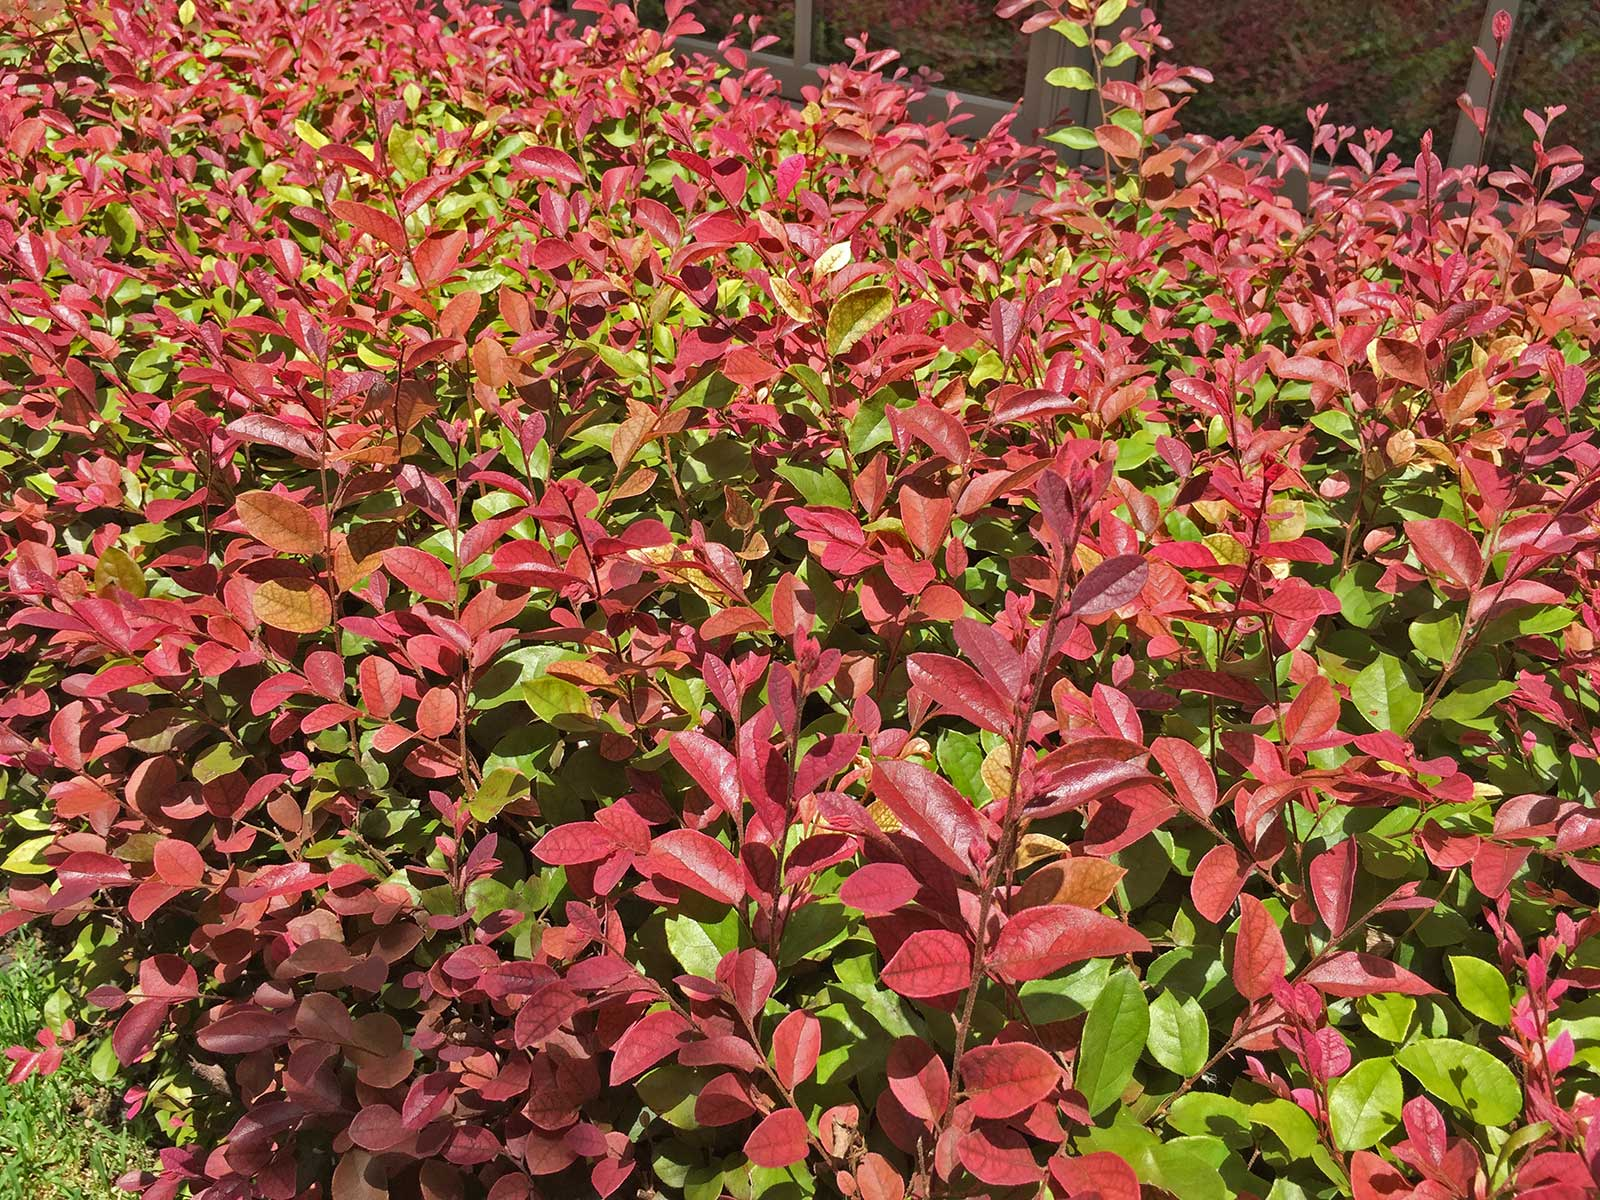 Loropetalum's bright maroon and red leaves make a nice contrast to the base green leaves and the intensity of the leaf coloring is often tied to the amount of light it receives.